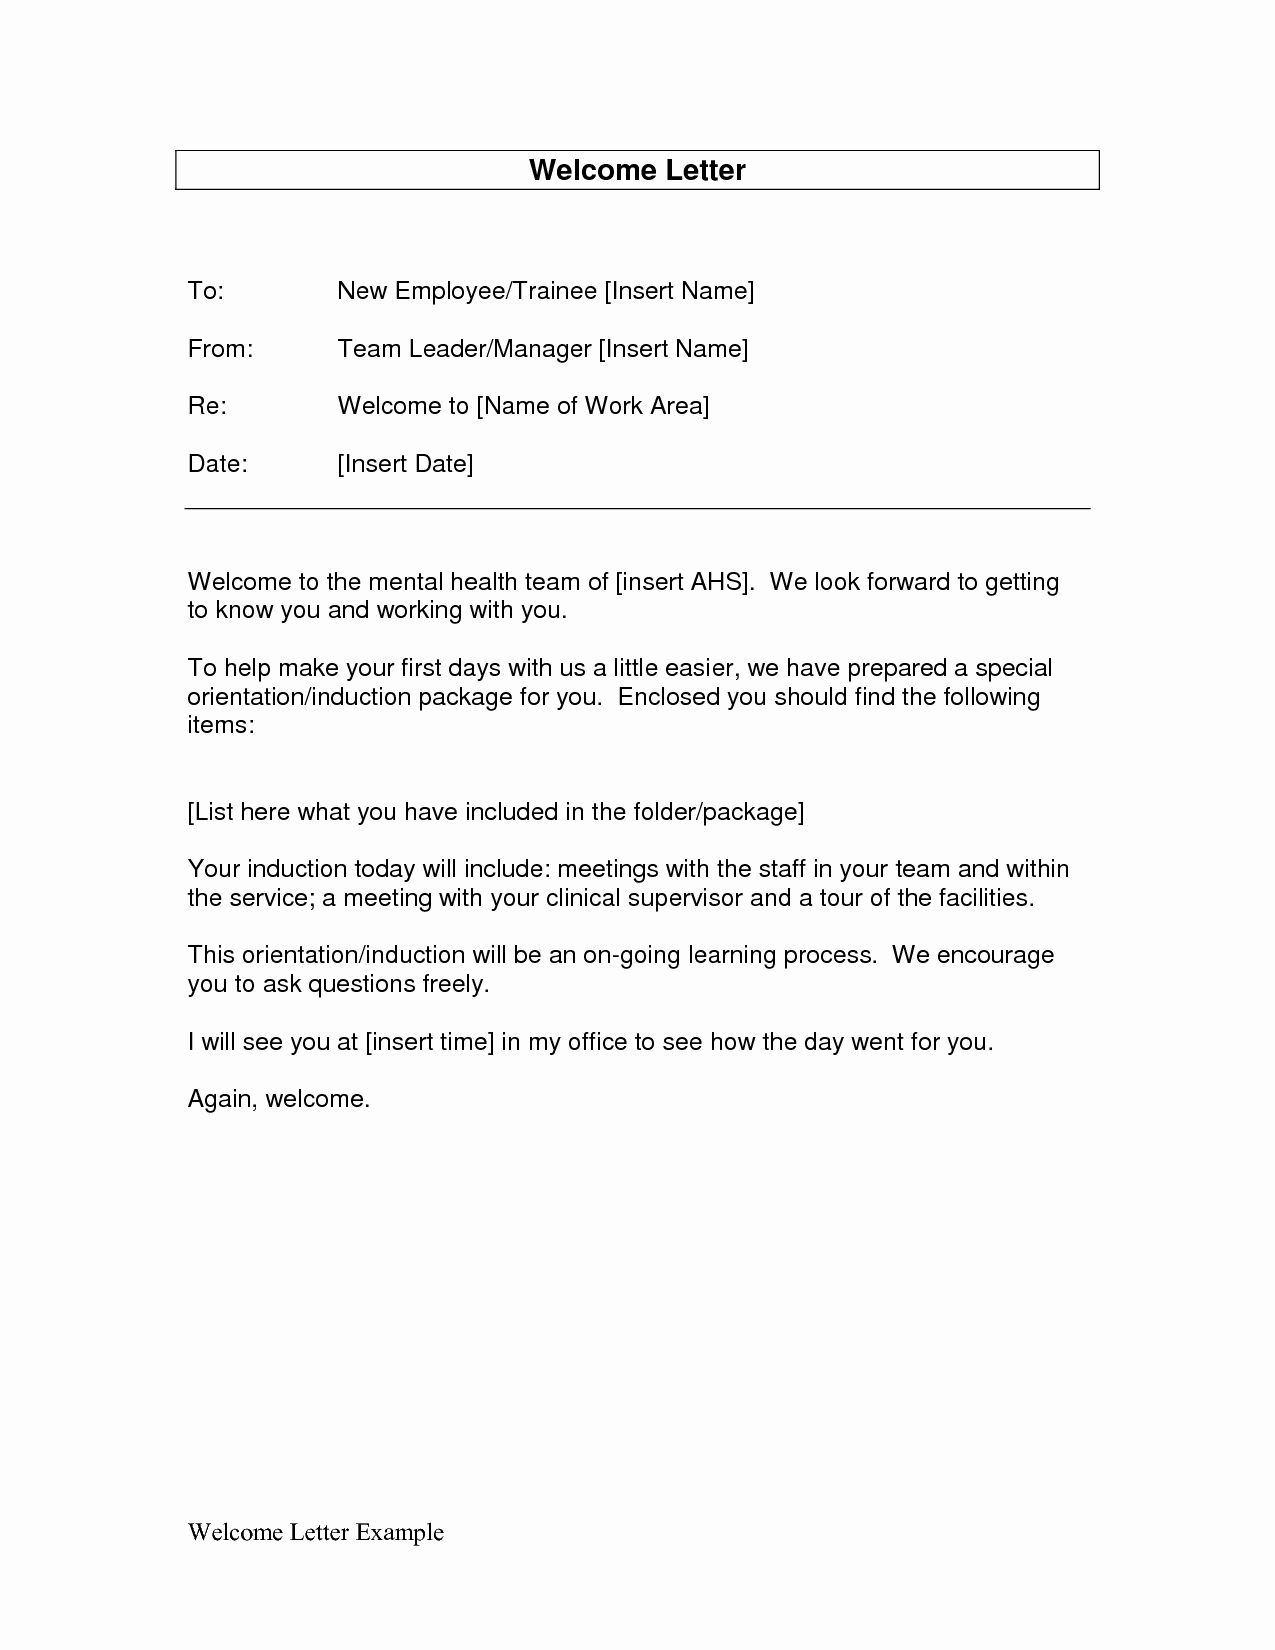 New Employee Welcome Packet Template Luxury Employee Wel E Letter as Well Handbook From President